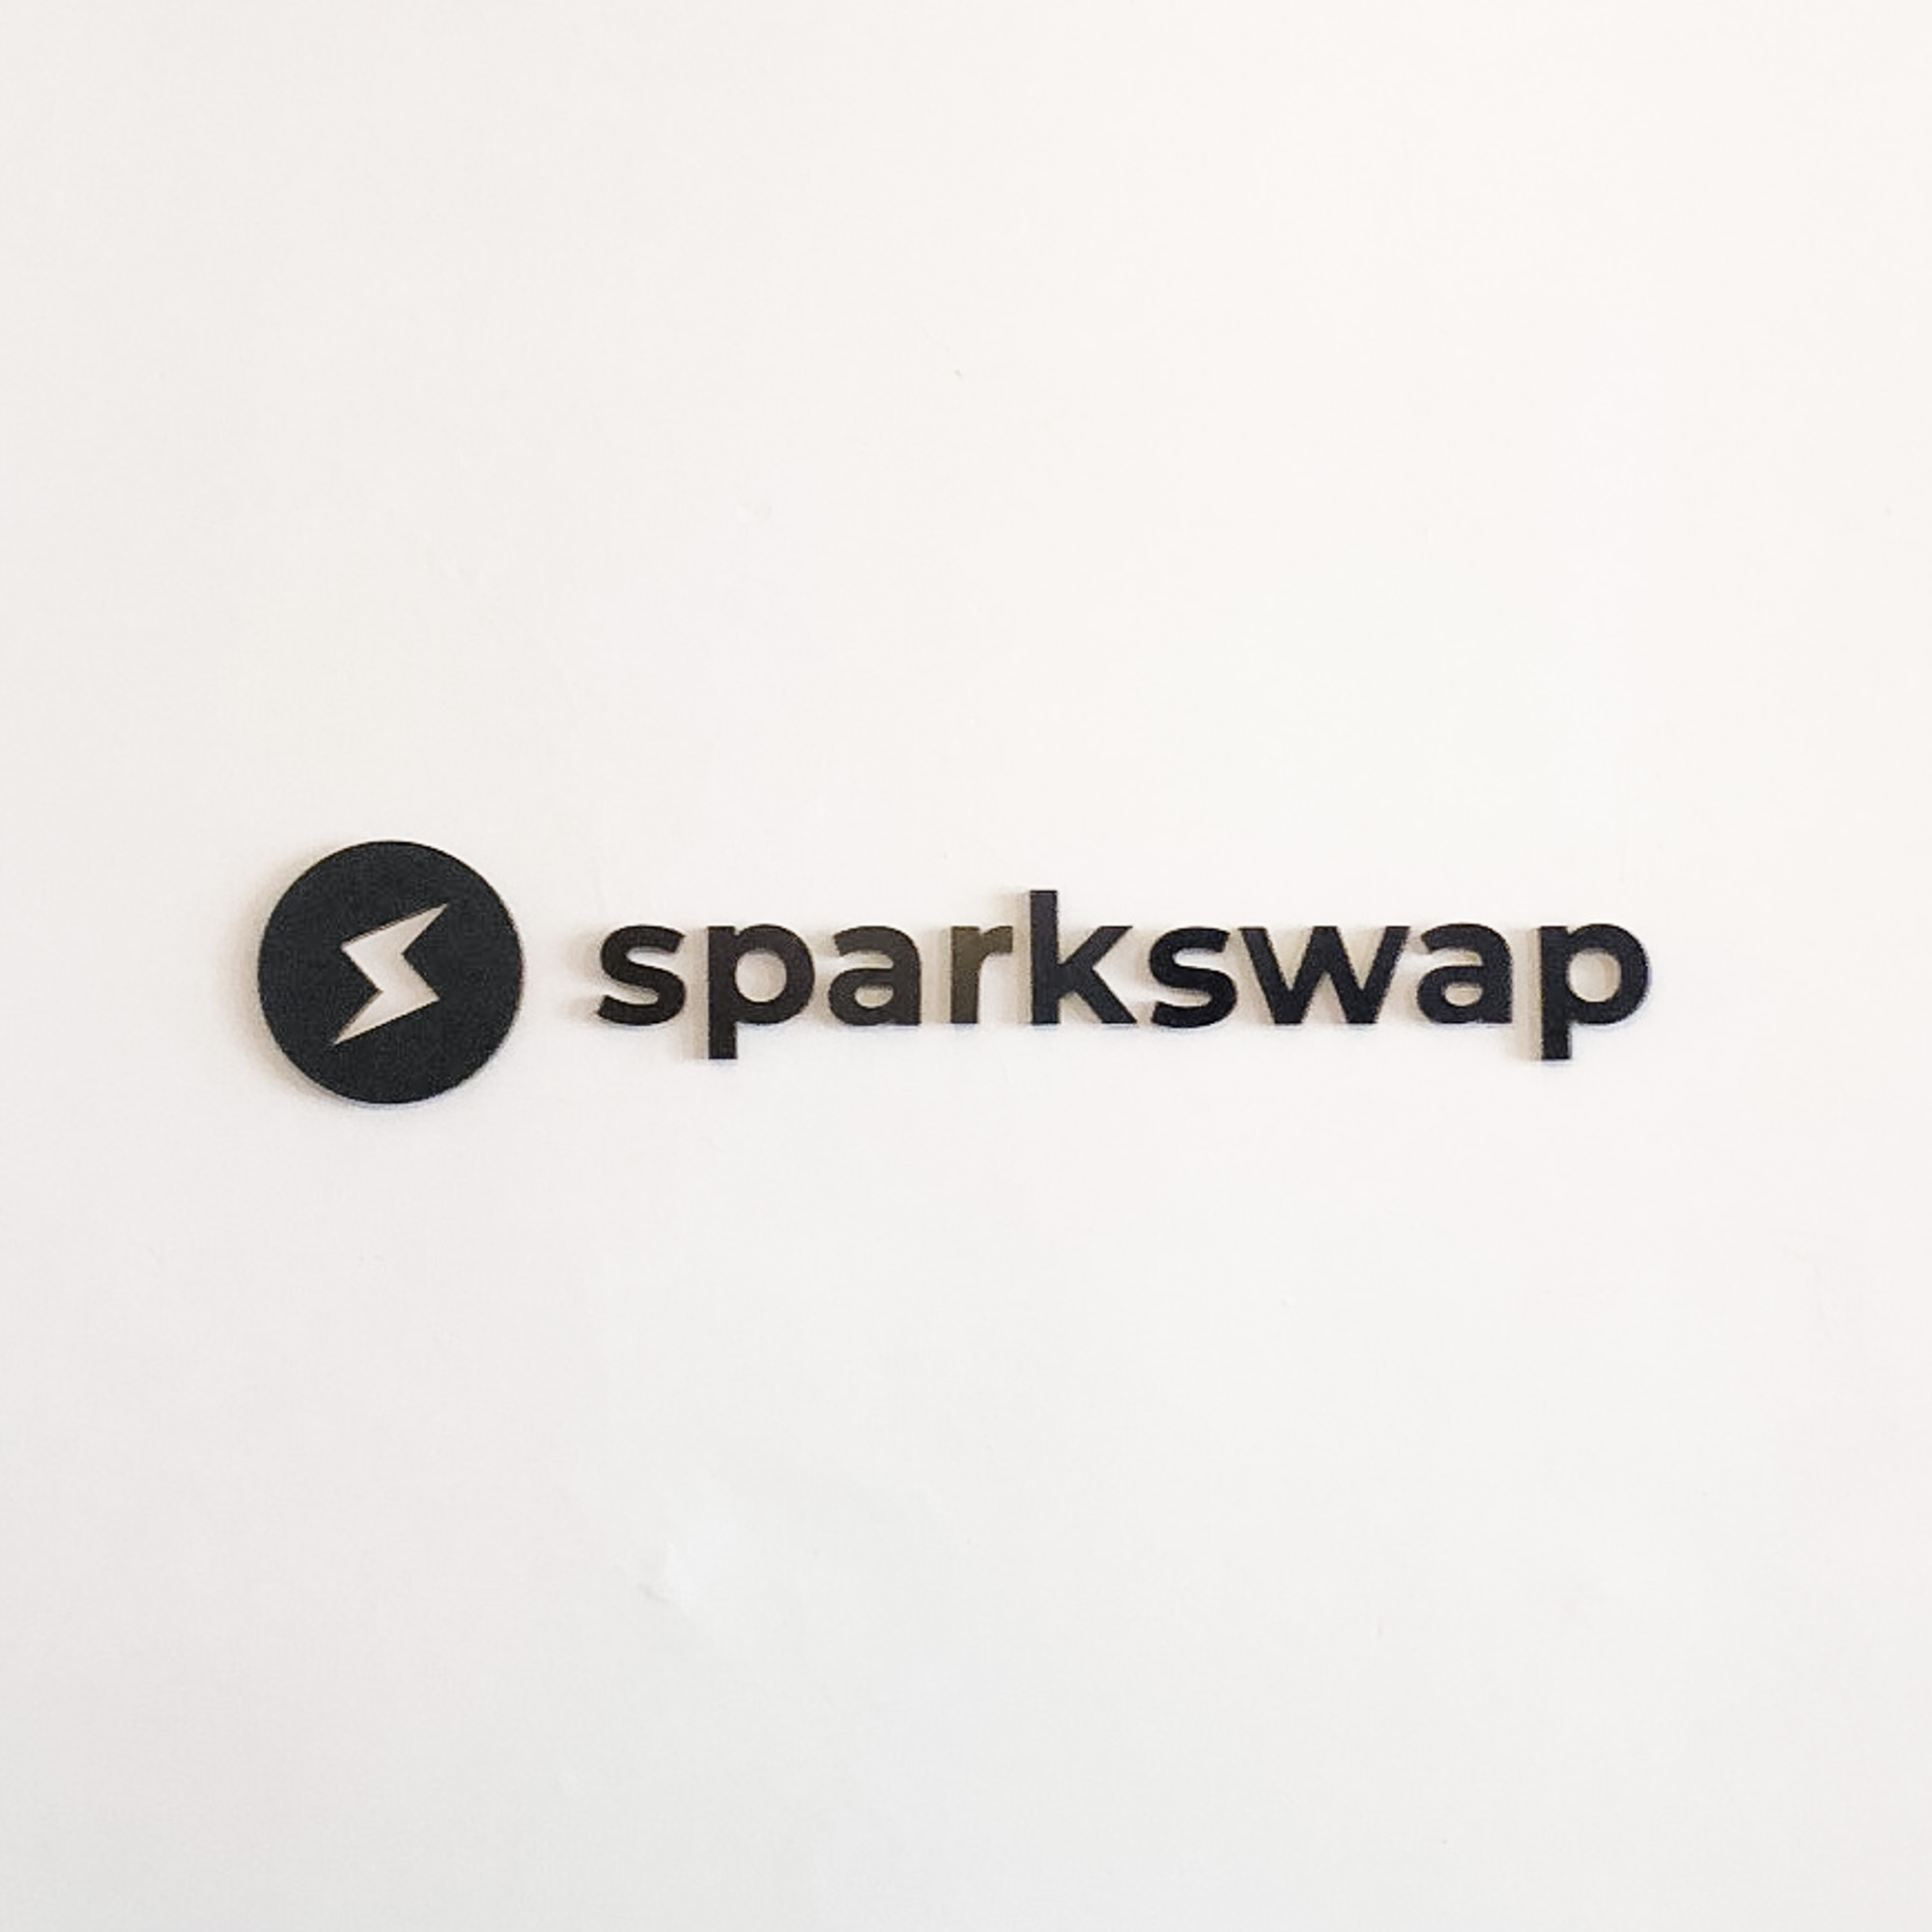 Black painted acrylic logo on white wall for Sparkswap, the first cryptocurrency exchange built on the Lightning Network